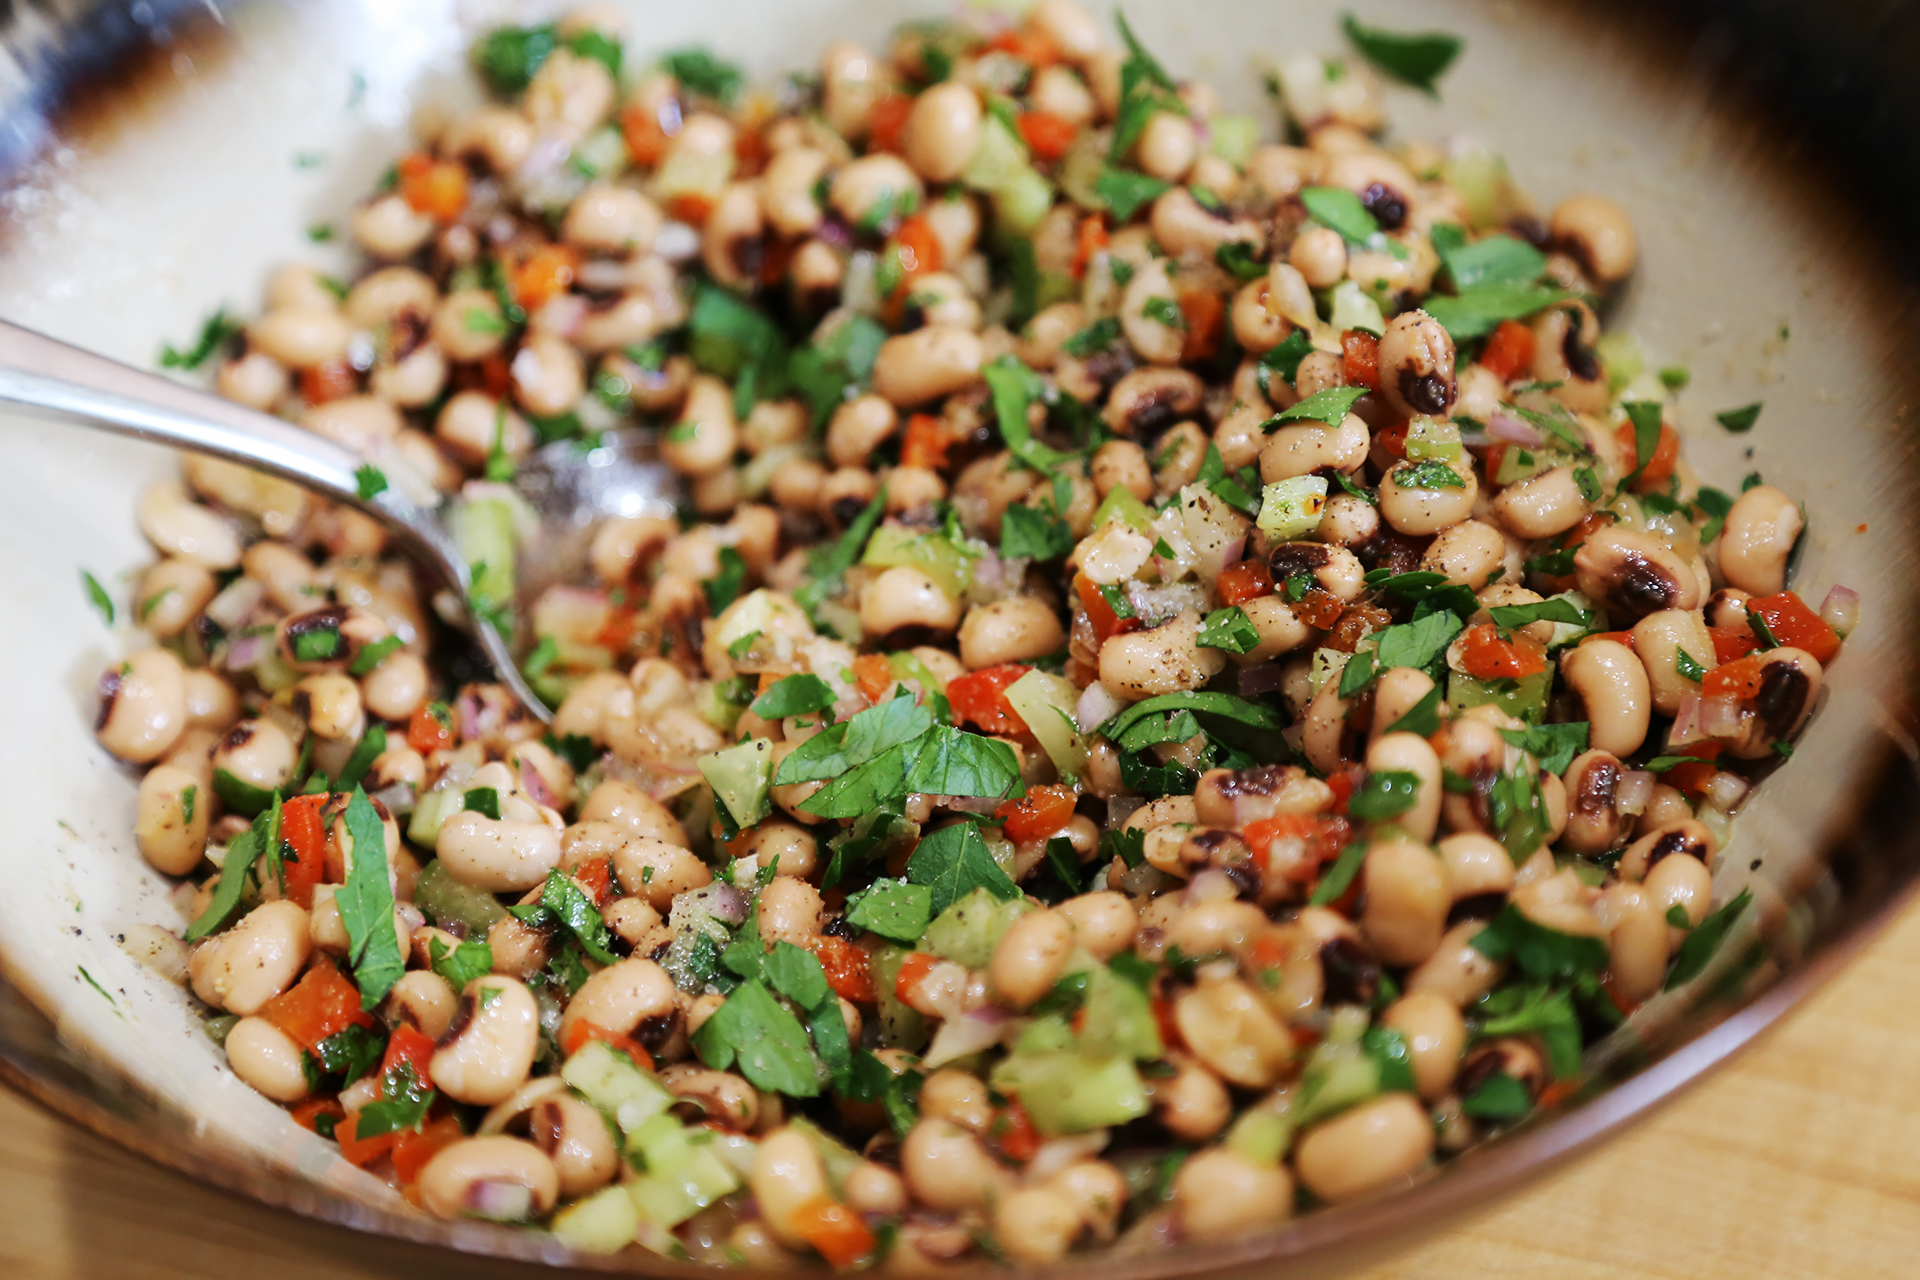 Garnish the Healthy Black-Eyed Pea Salad with some fresh parsley and serve.